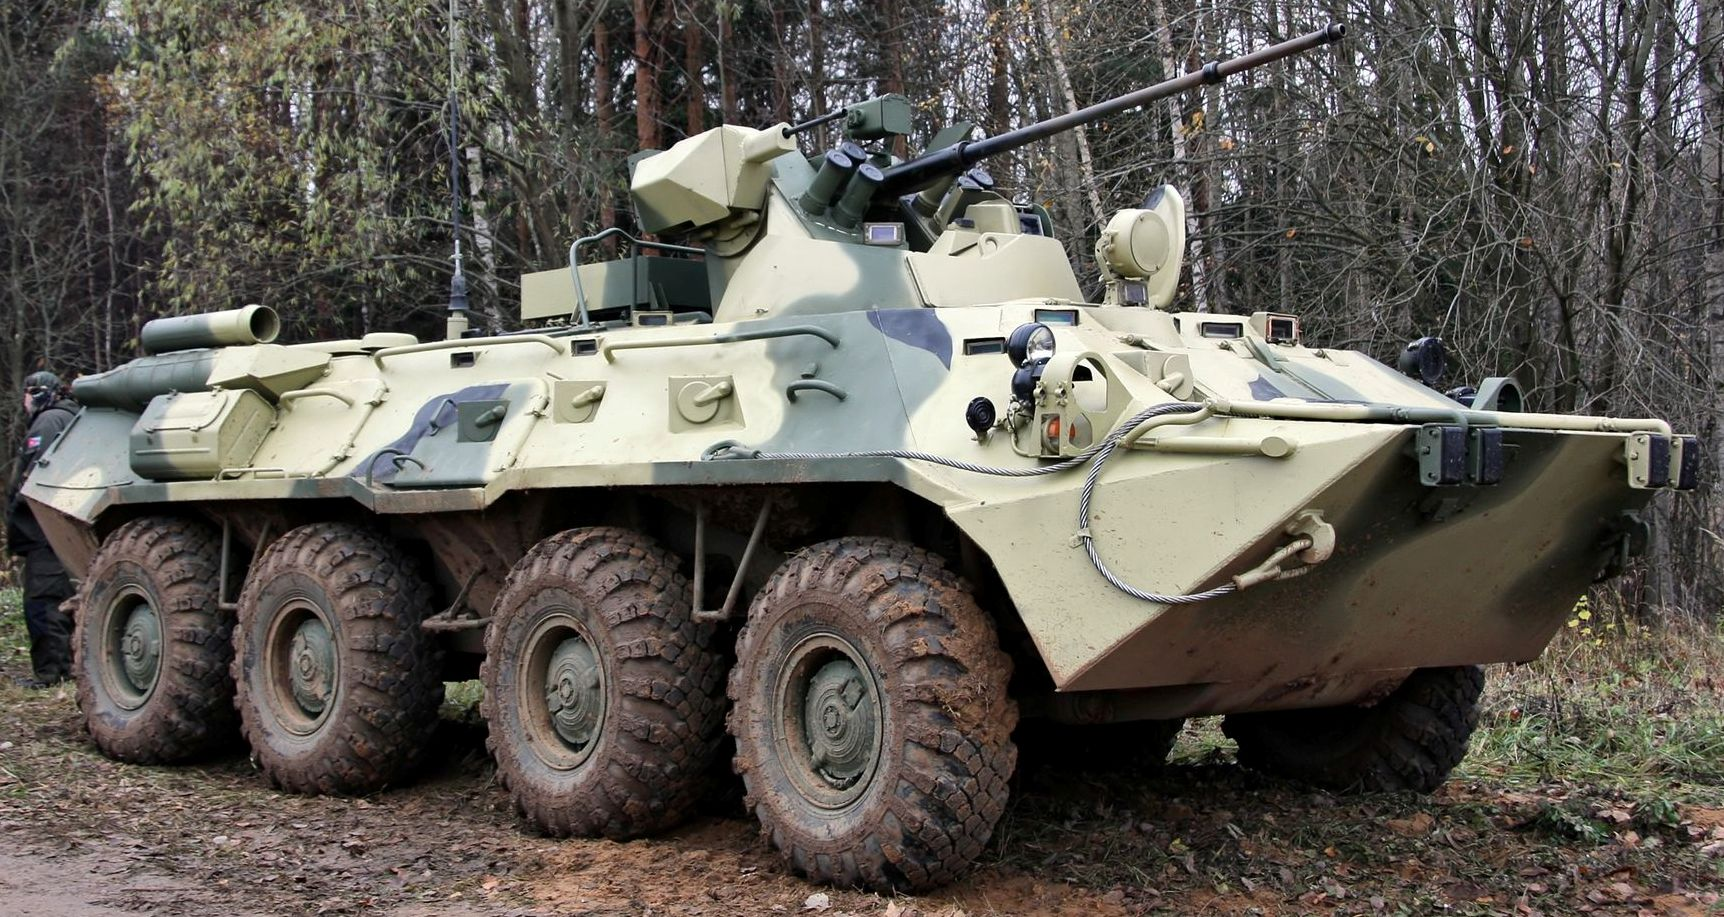 Russian and Ukrainian Upgrade Programs of BMP-1 and BMP-2 IFVs (1)